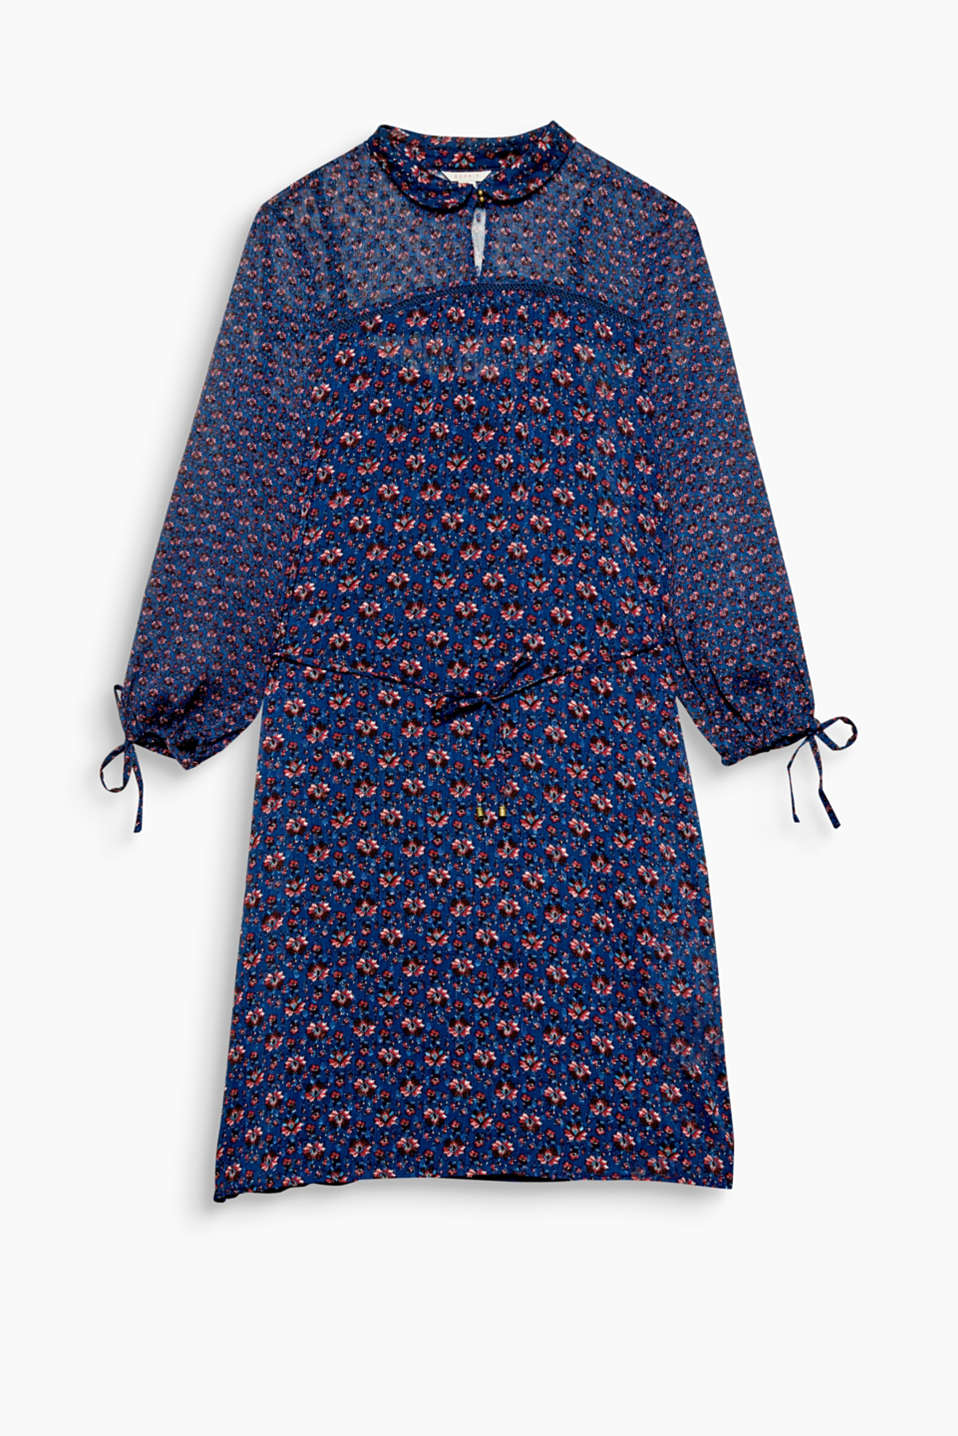 Dresses are all about autumnal styling now - much like this dress in textured chiffon with a floral print!